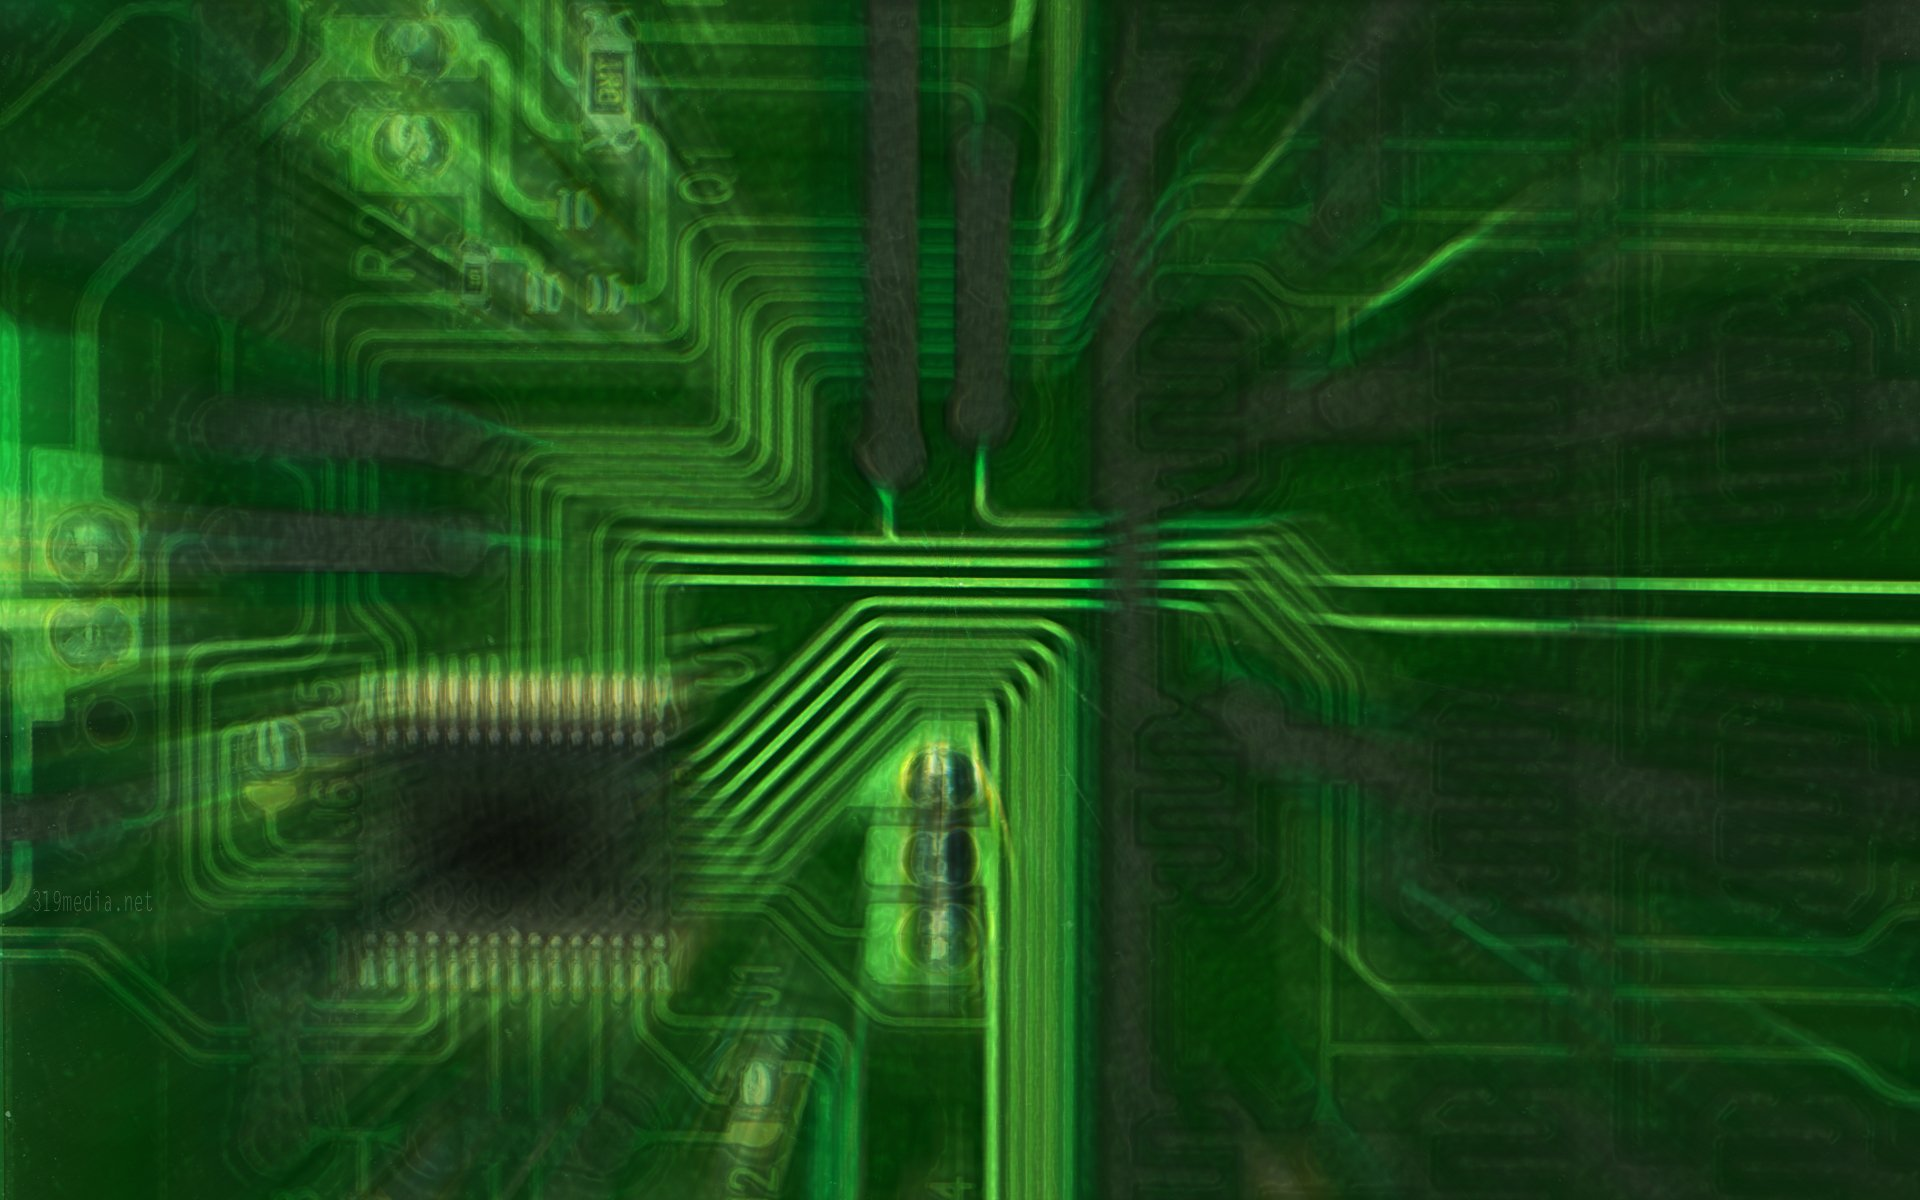 Technology - Circuit  Abstract Green Blur Computer Technology Wallpaper